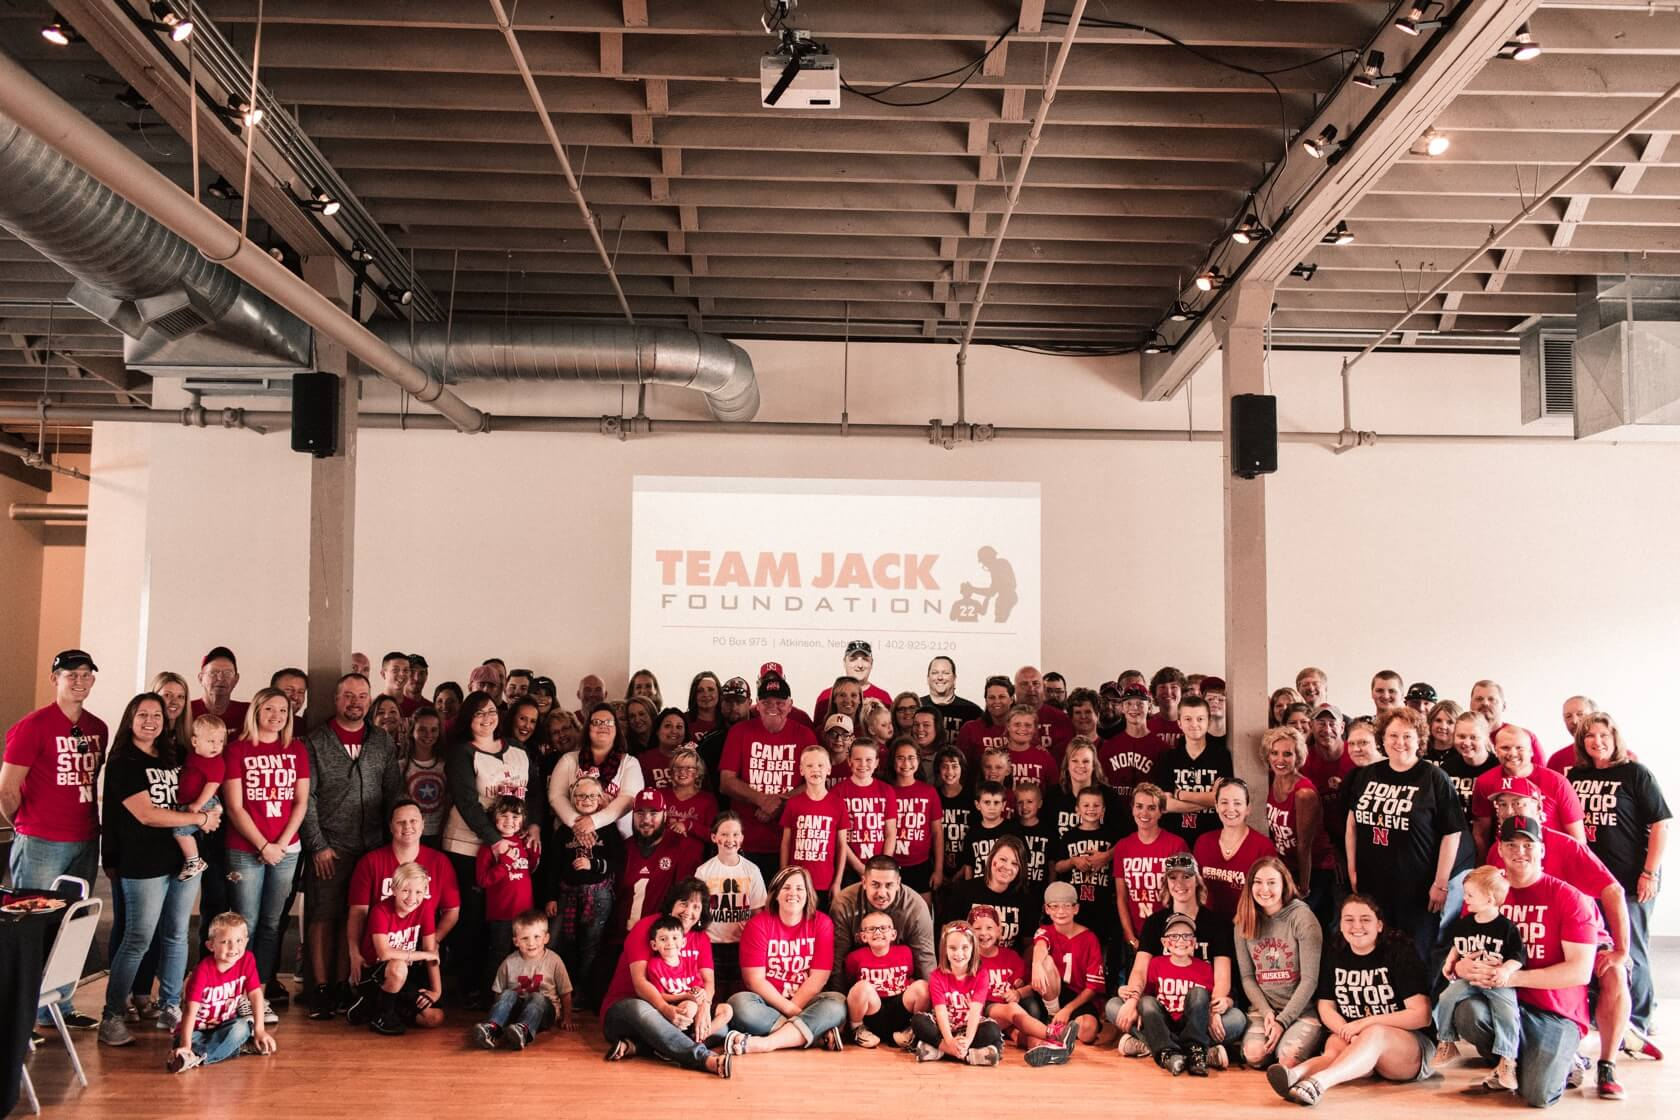 Team Jack group picture